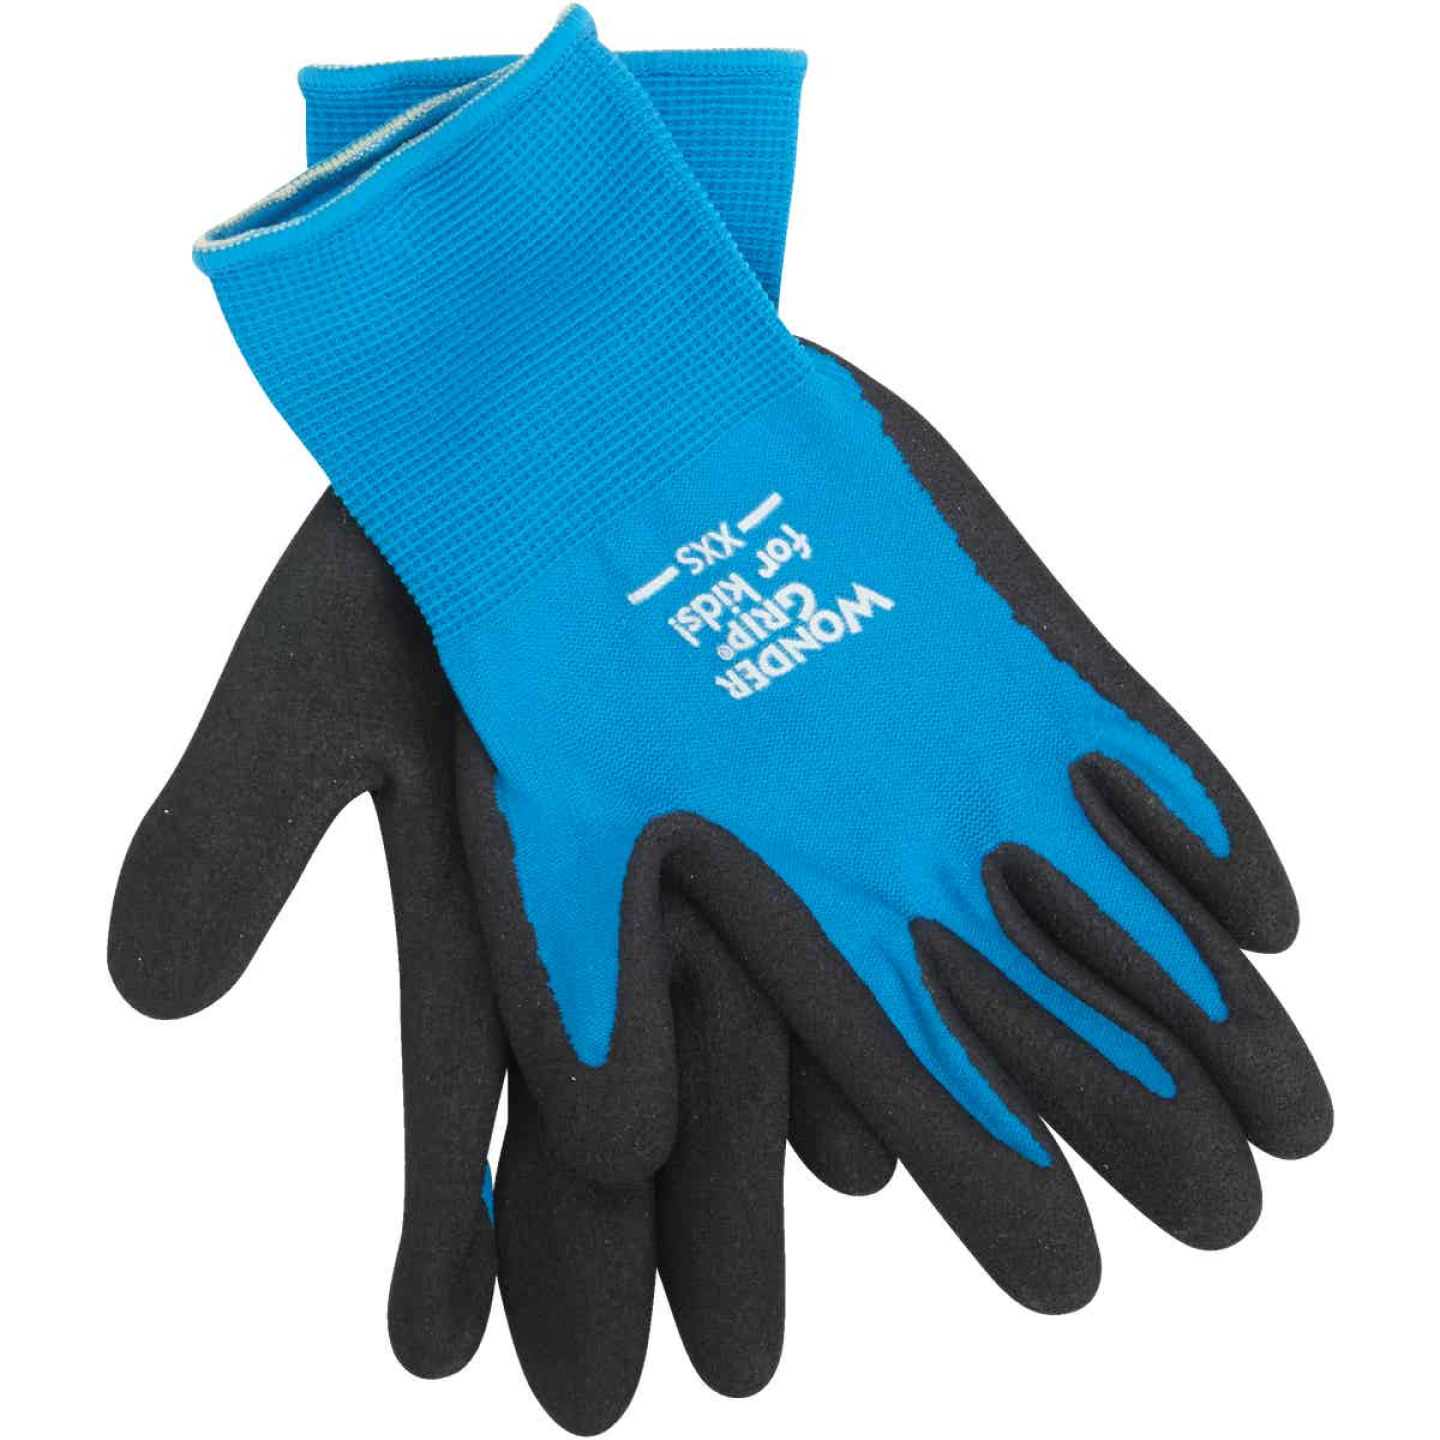 Wonder Grip Kid's Nylon & Spandex Glove Image 3